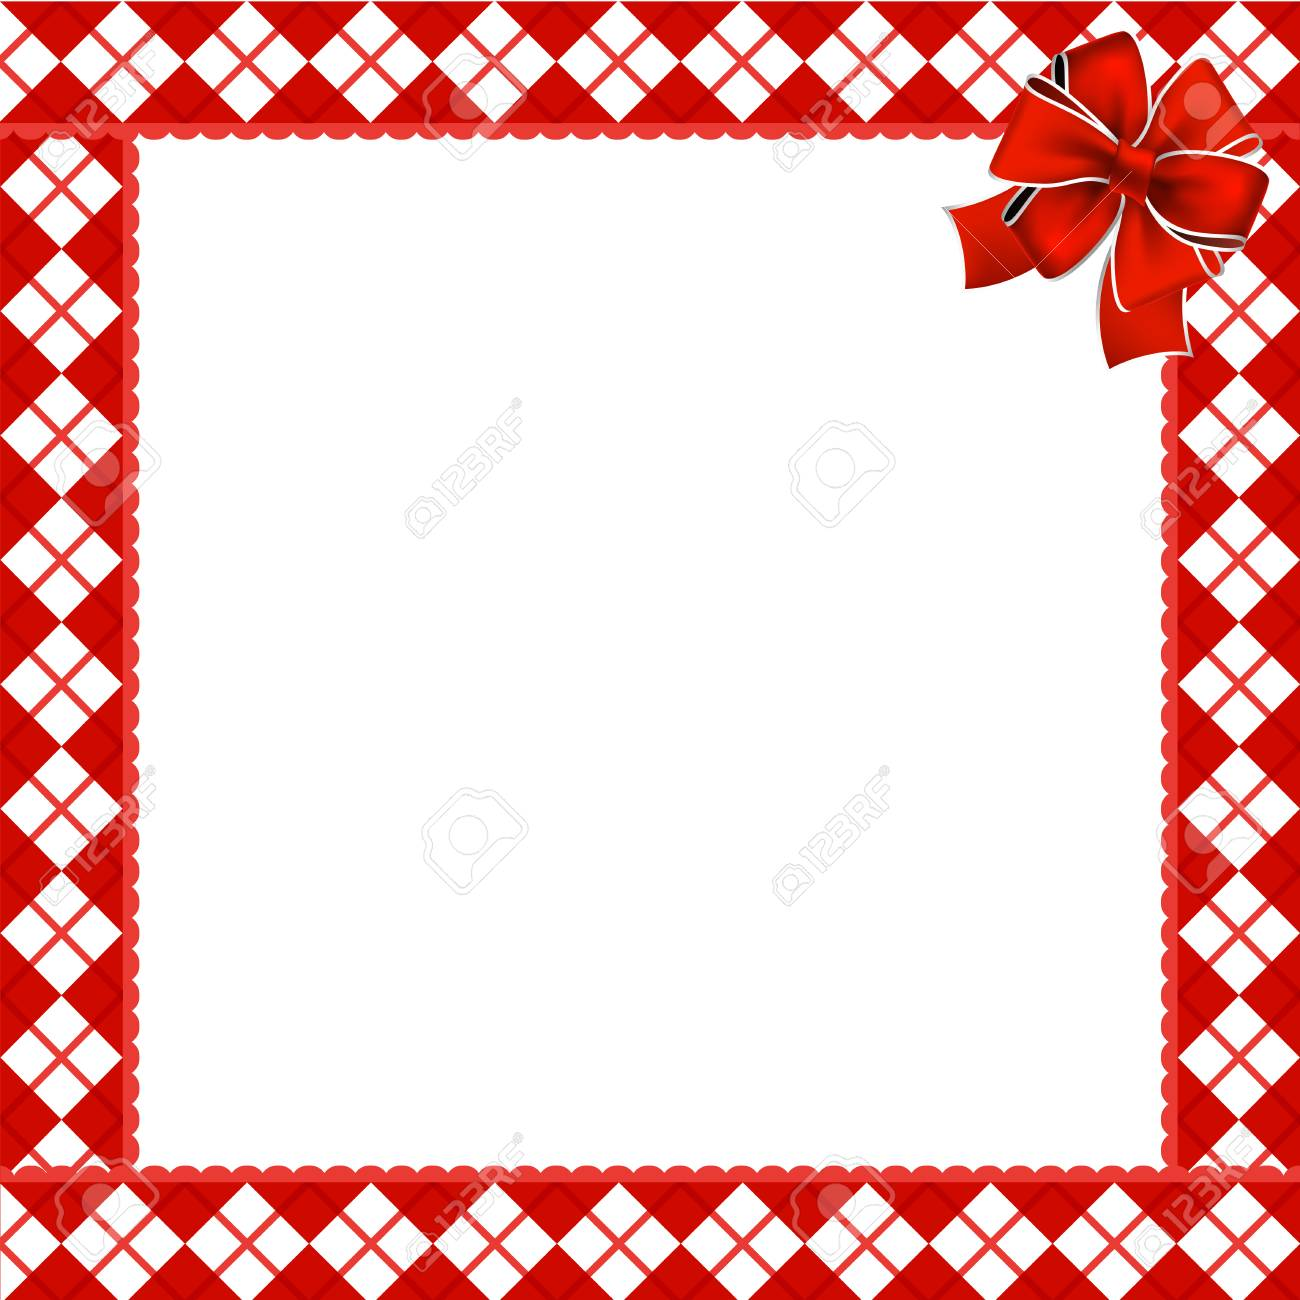 cute christmas or new year frame with red and white diamond pattern decorated with red ribbon